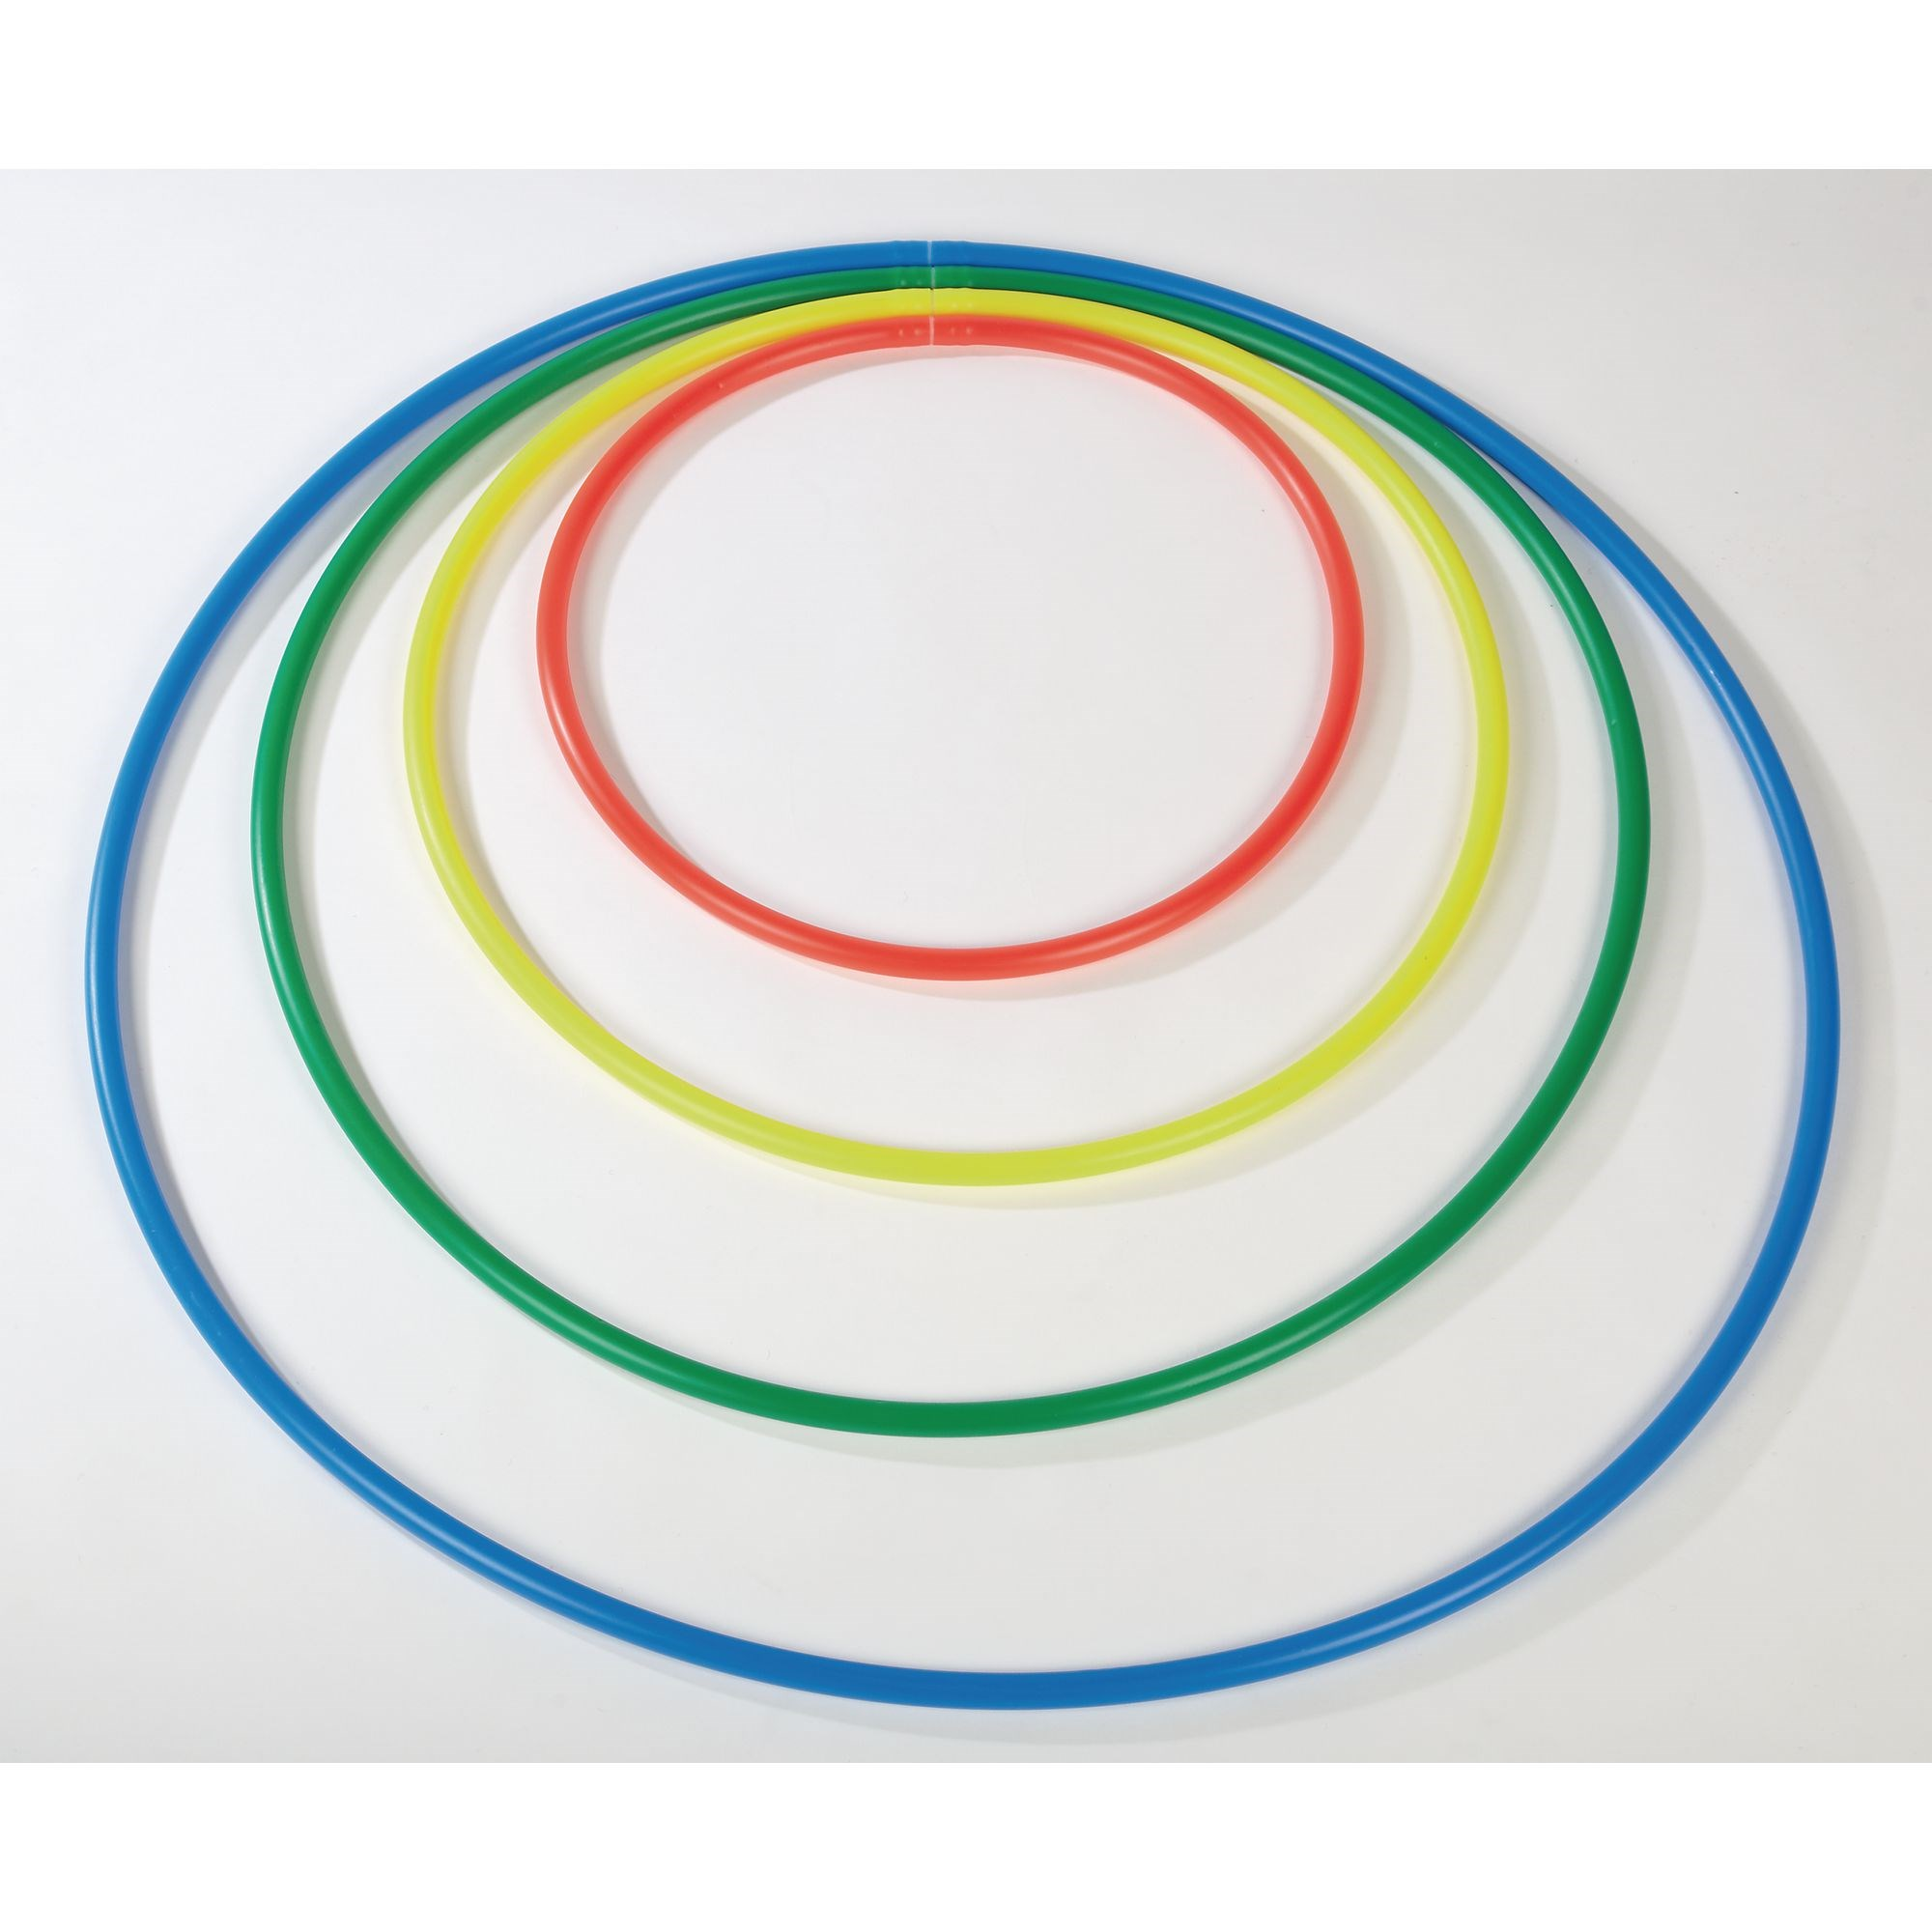 Hoop - 460mm - Yellow